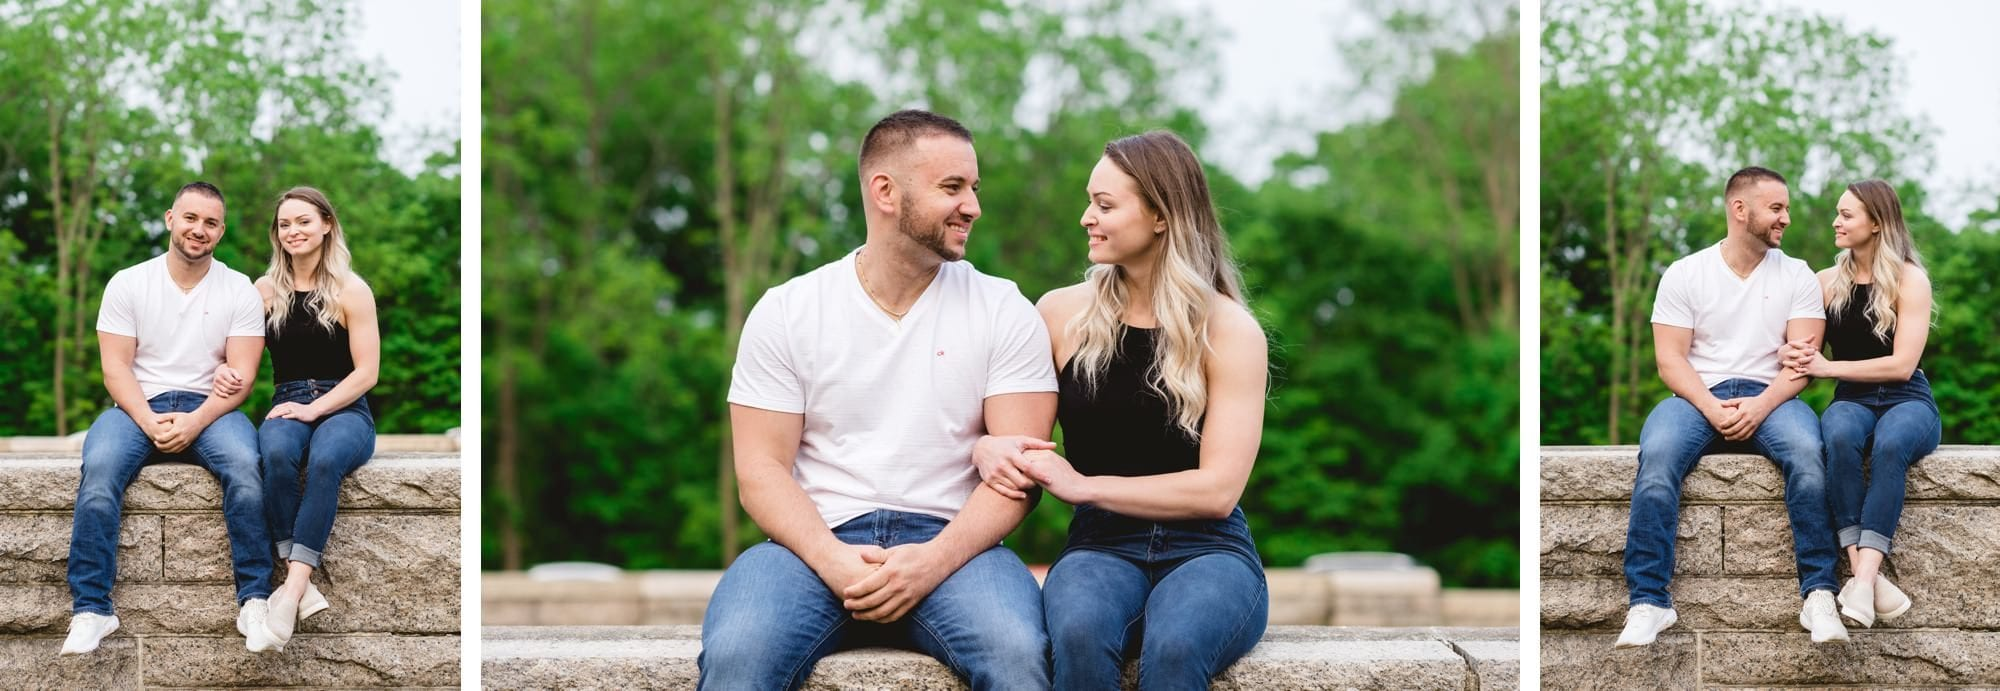 Greycourt State Park Engagement Session